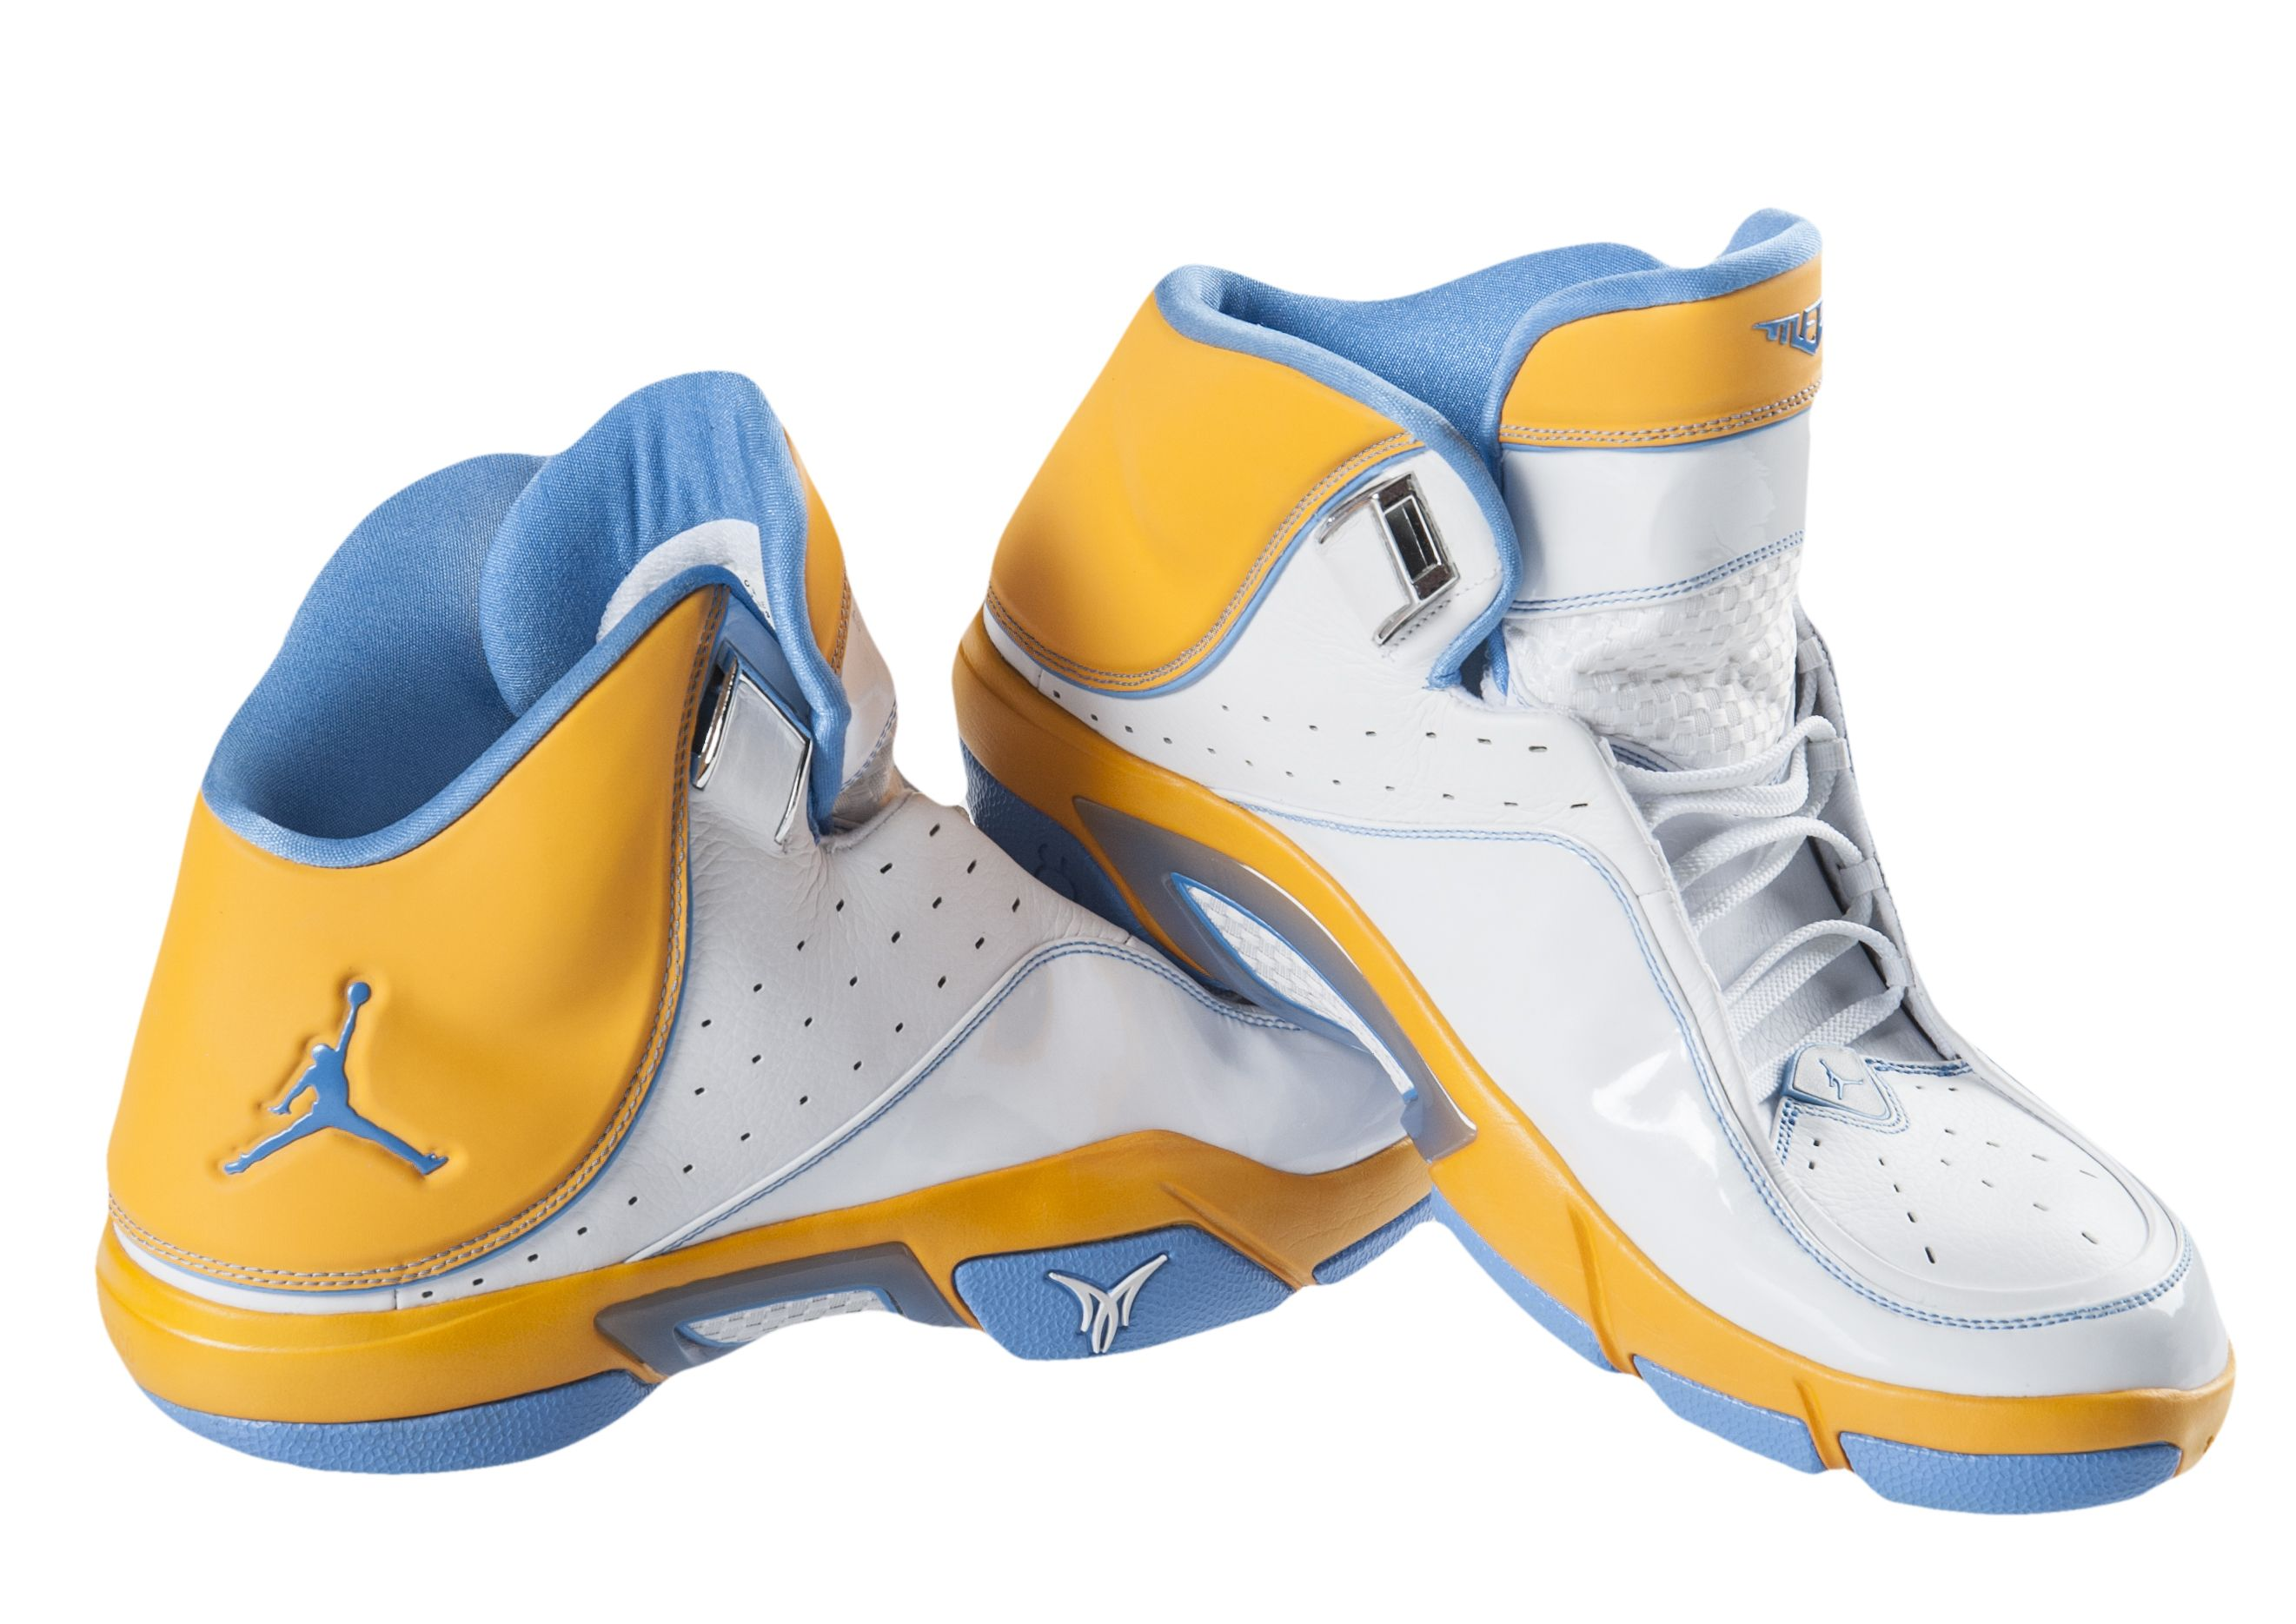 Nike High Top Light Shoes